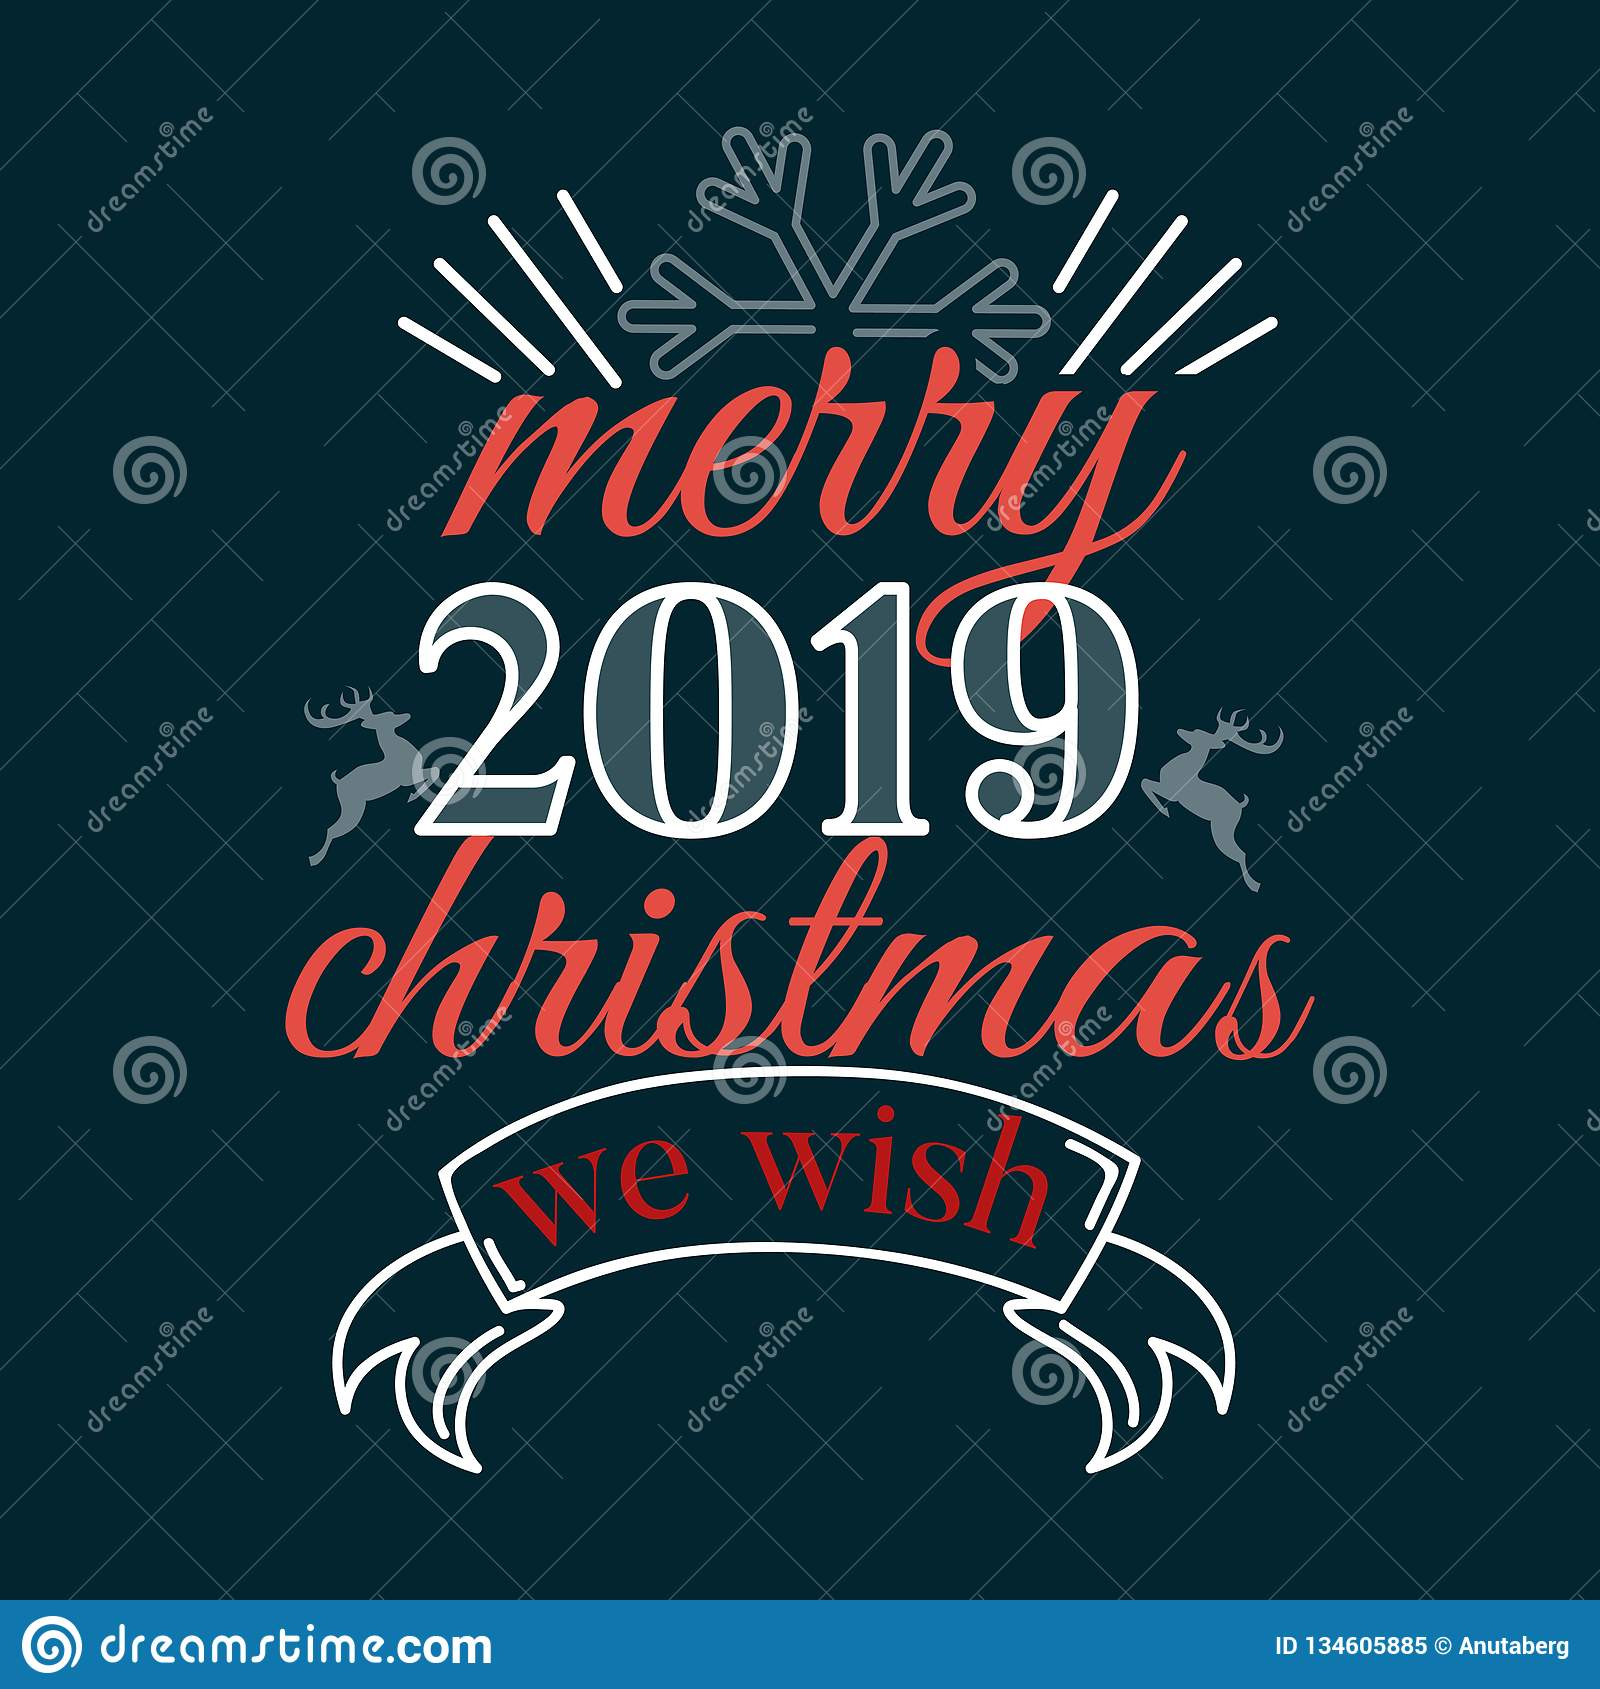 Have Very Merry Christmas And Happy New Year 2019 We Wish ...